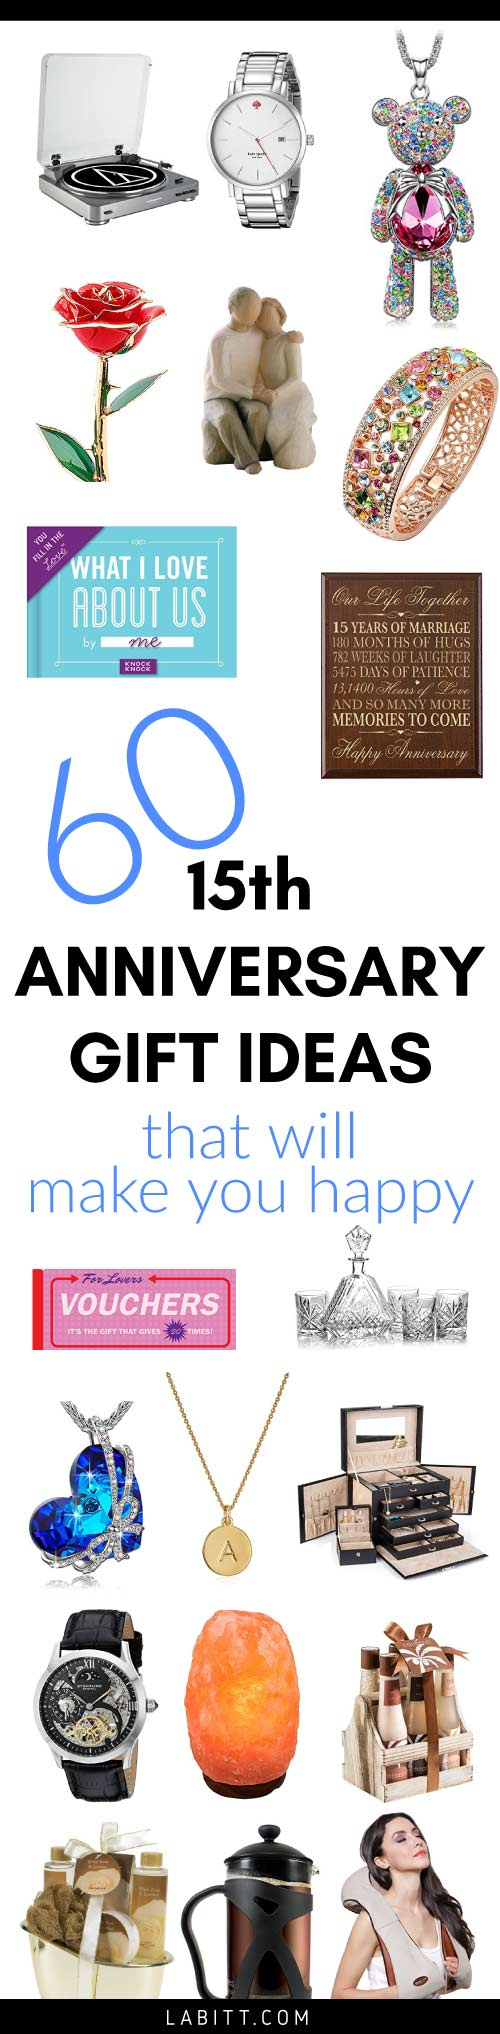 15th wedding anniversary gift ideas for metropolitan